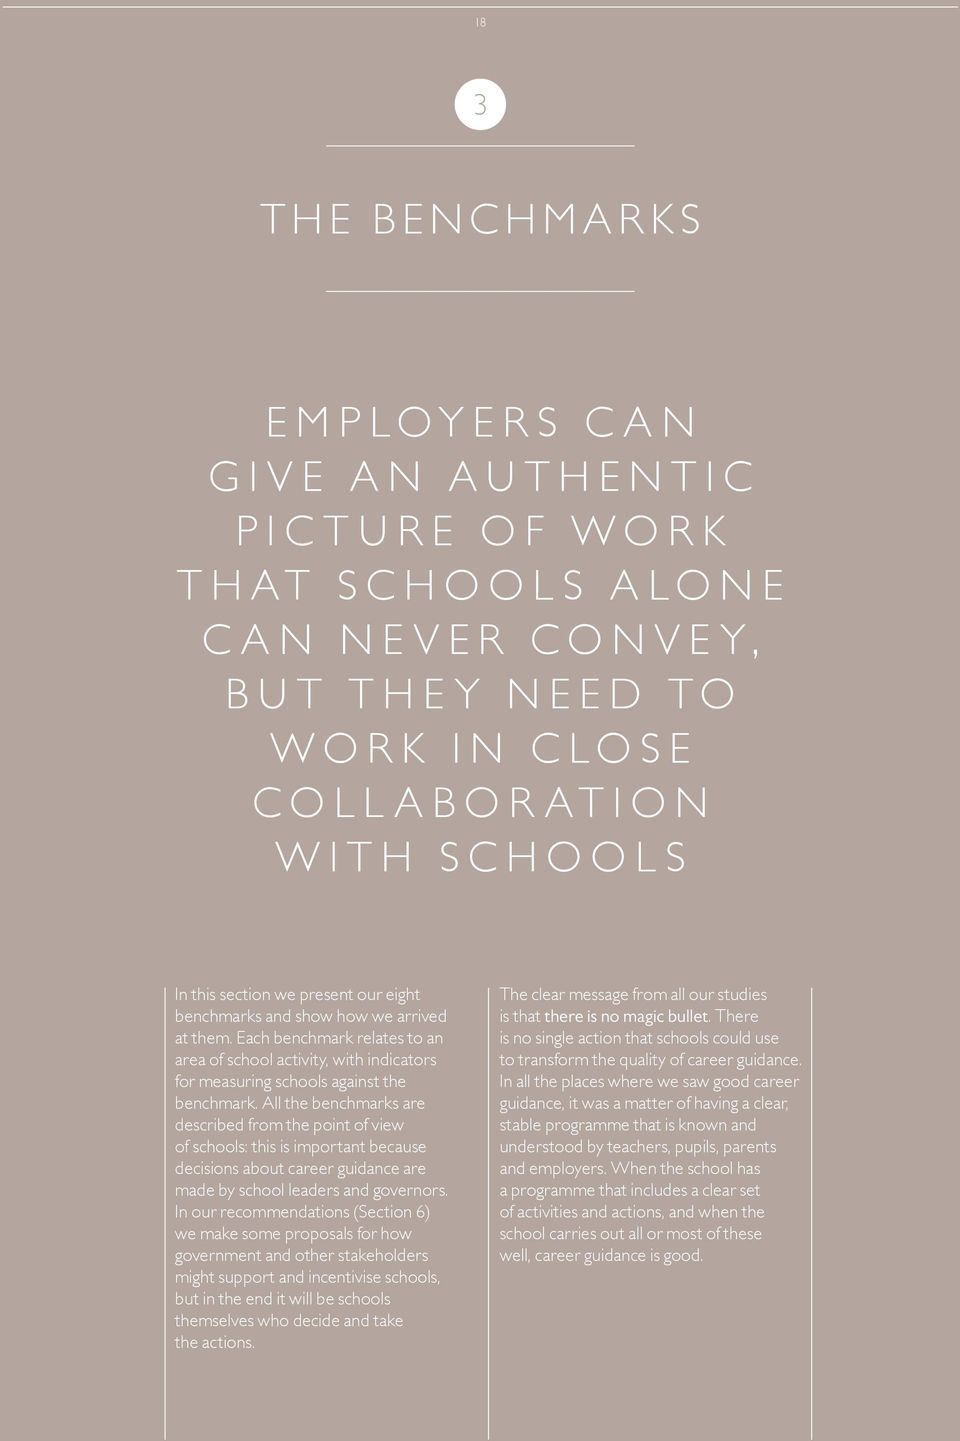 All the benchmarks are described from the point of view of schools: this is important because decisions about career guidance are made by school leaders and governors.